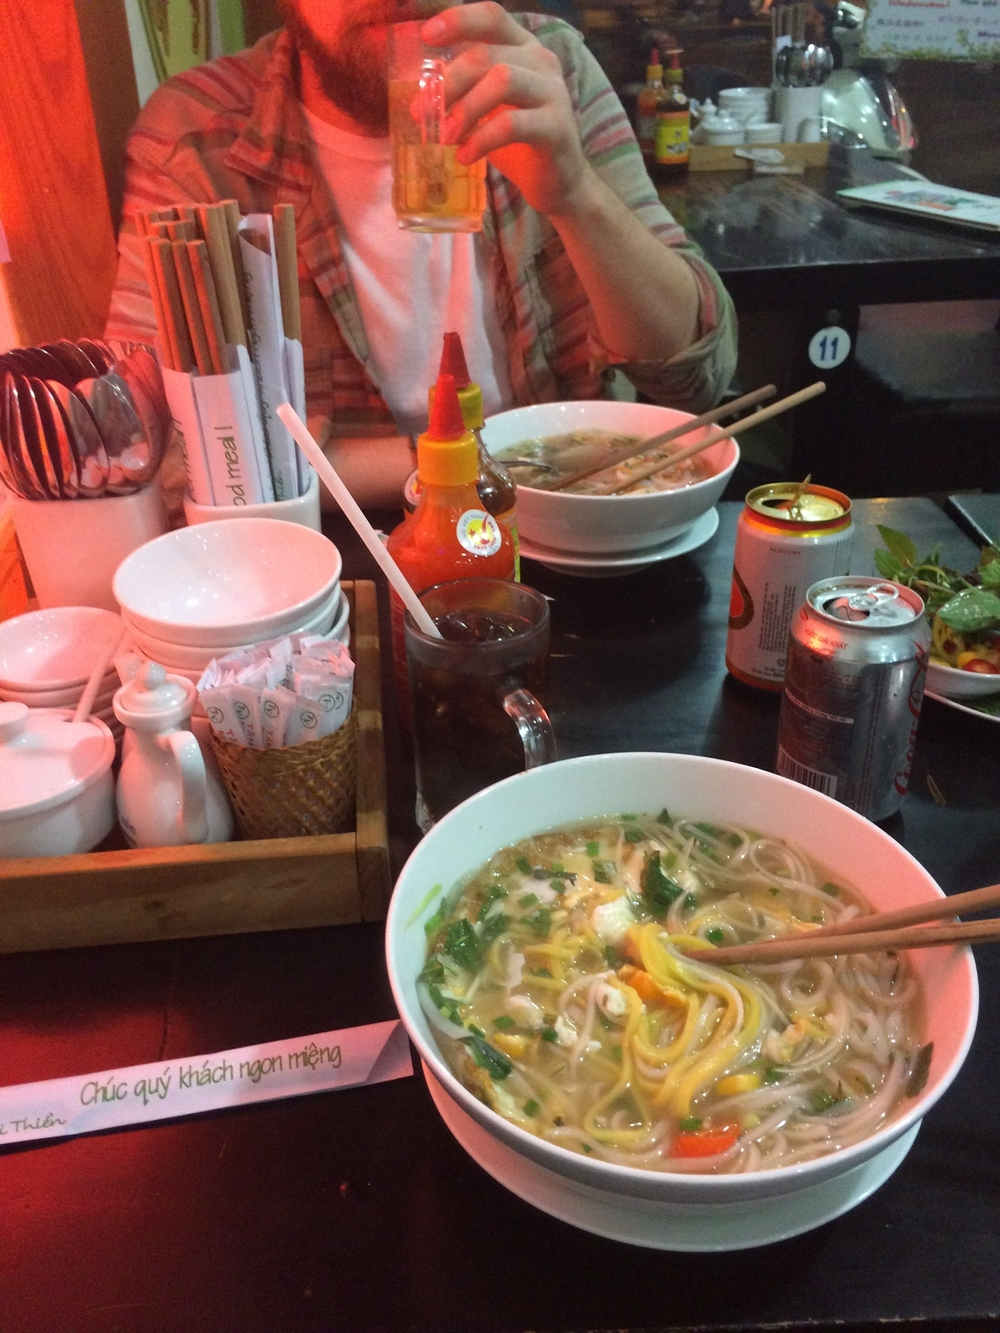 EVIL PHO! looks decivingly delicious but has made Brian sick